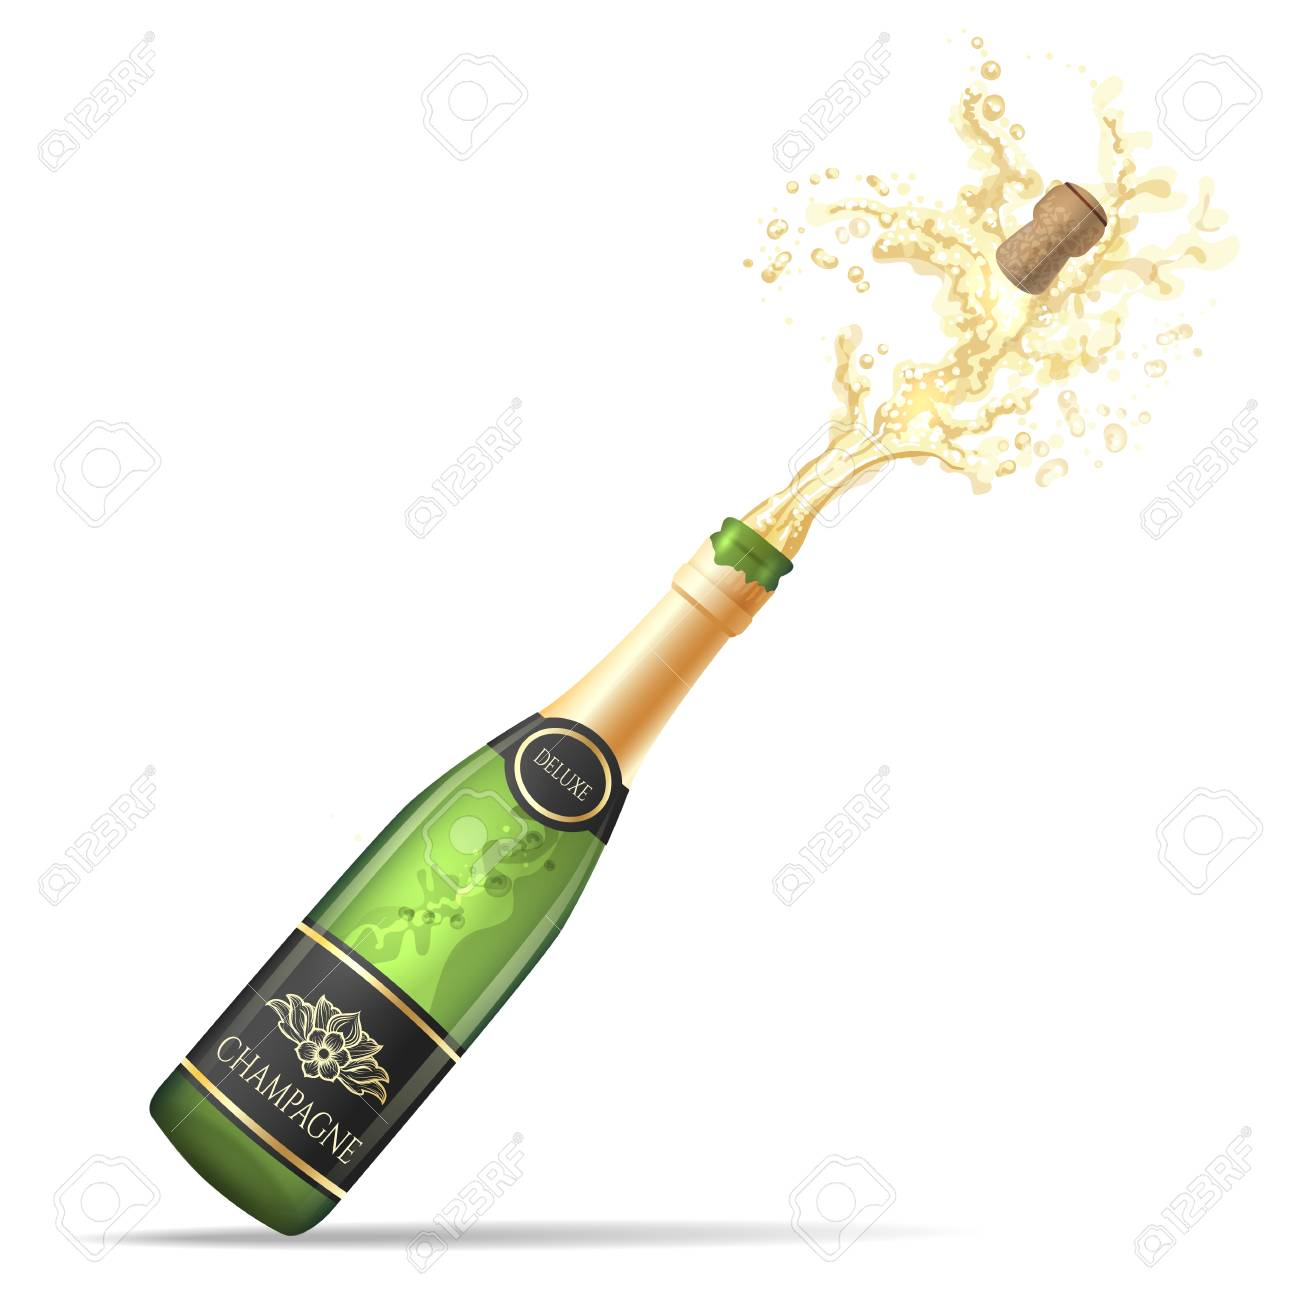 Champagne explosion. Champagne bottle pop and fizz vector illustration...